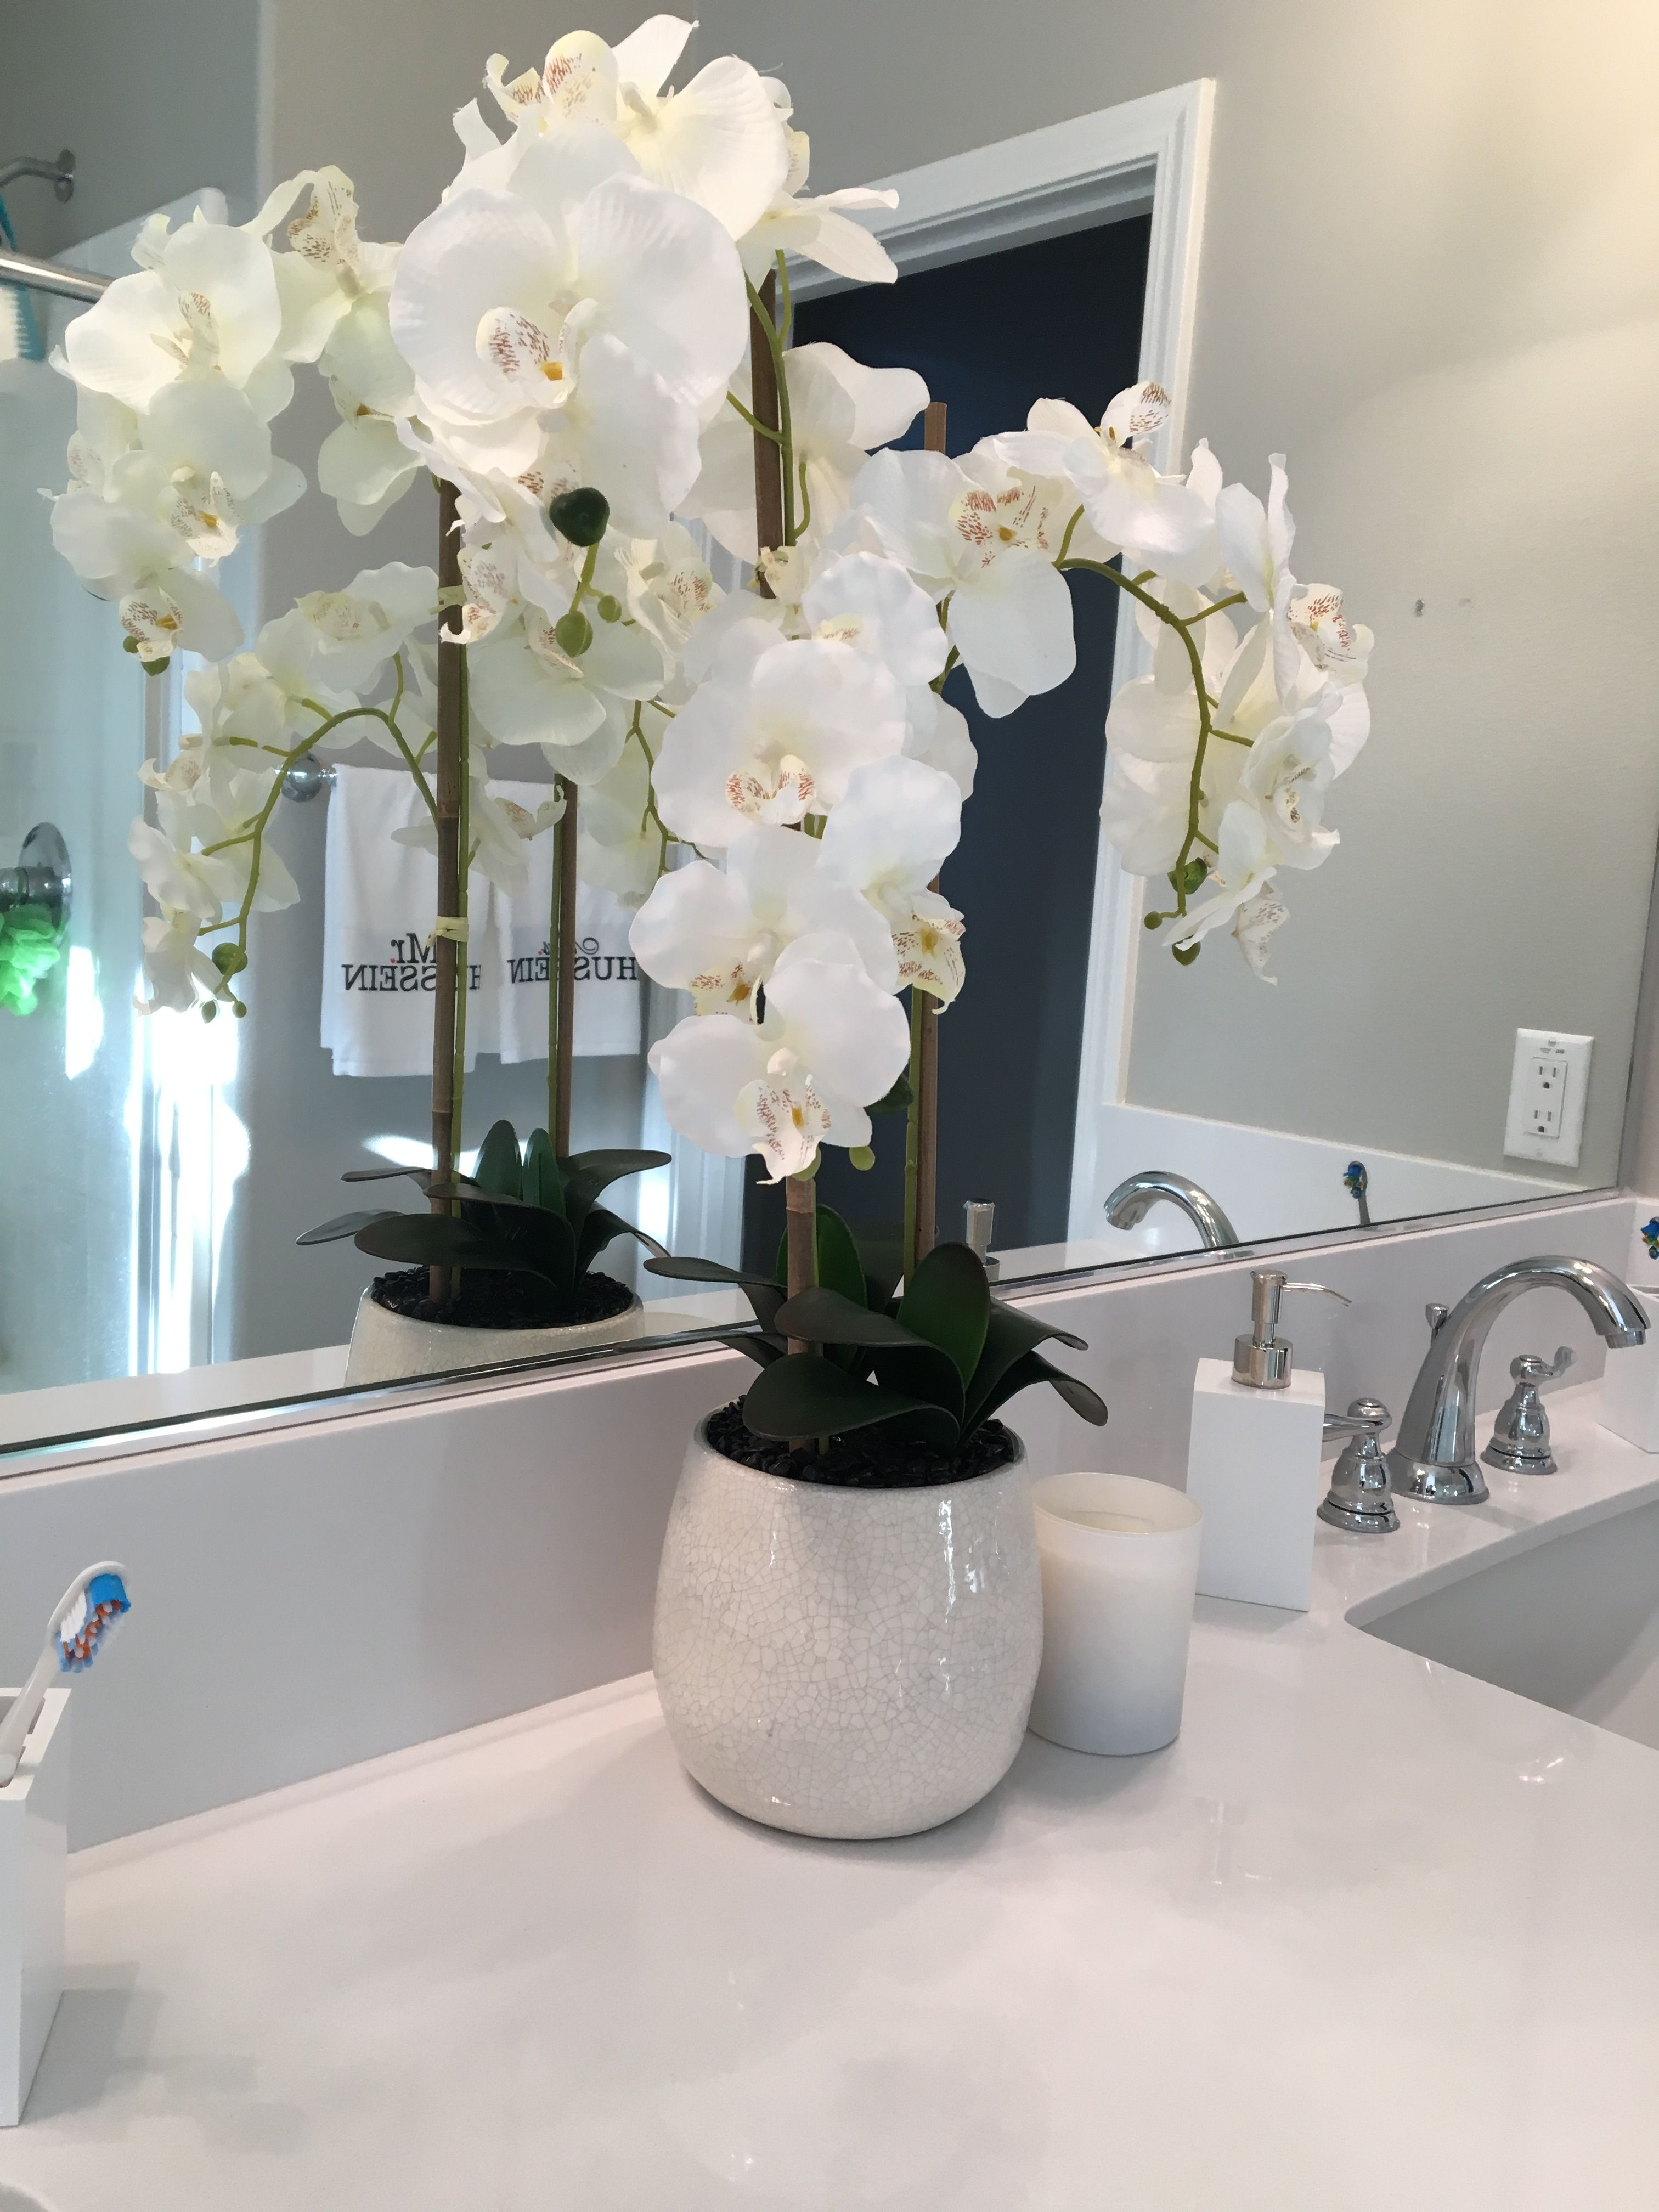 Bathroom Shelves Modern Clean White And Grey Added Shelves Green Transitional New Construction Socal Ho Bathroom Plants Bathroom Flowers Contemporary